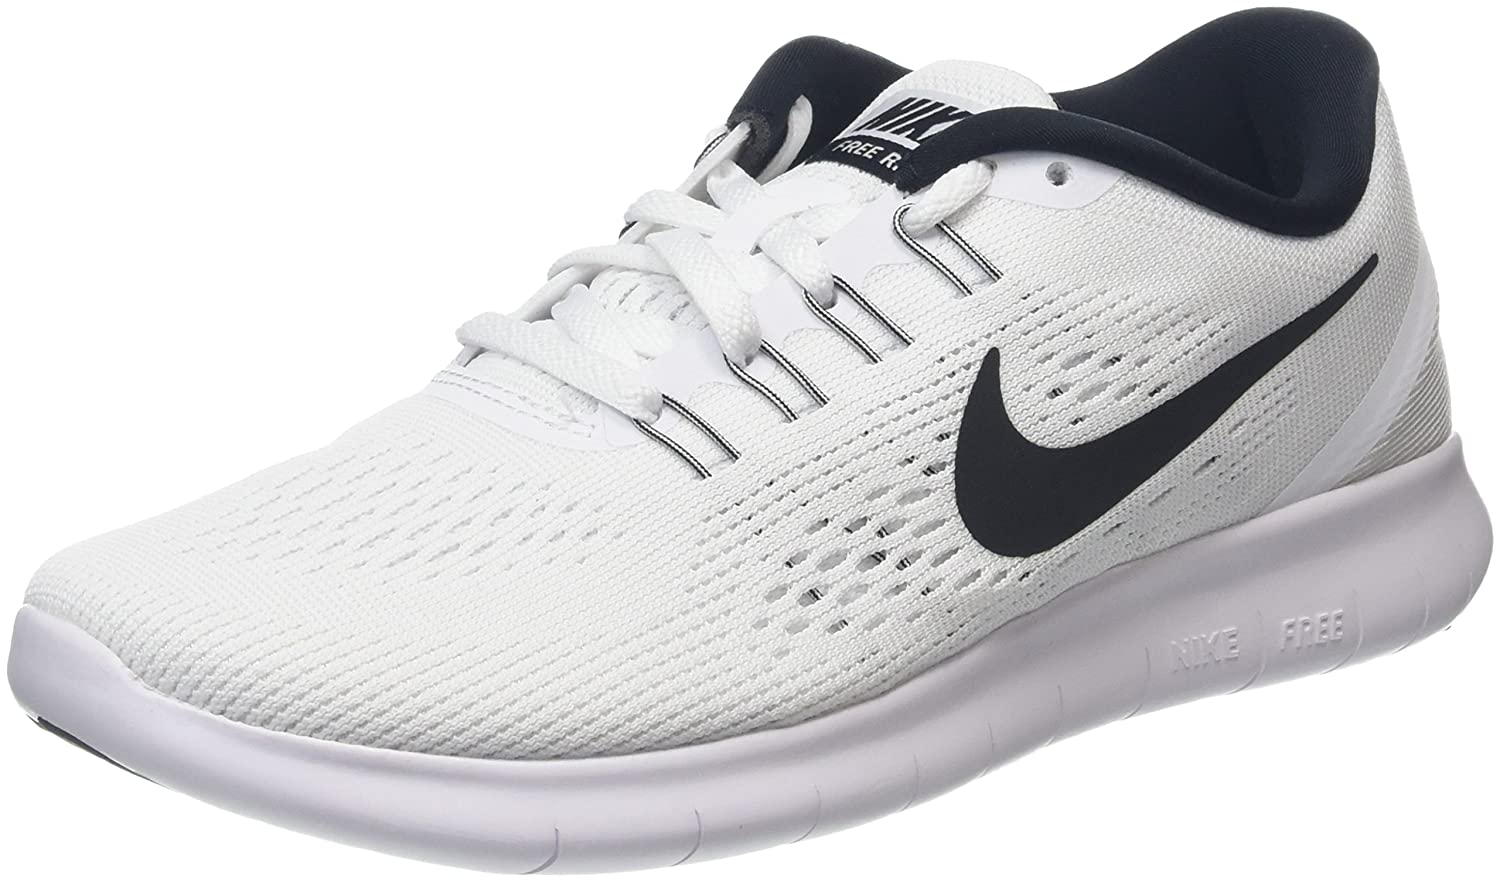 NIKE Women's Free RN Running Shoes B014EC8GVY 6 B(M) US|White / Black